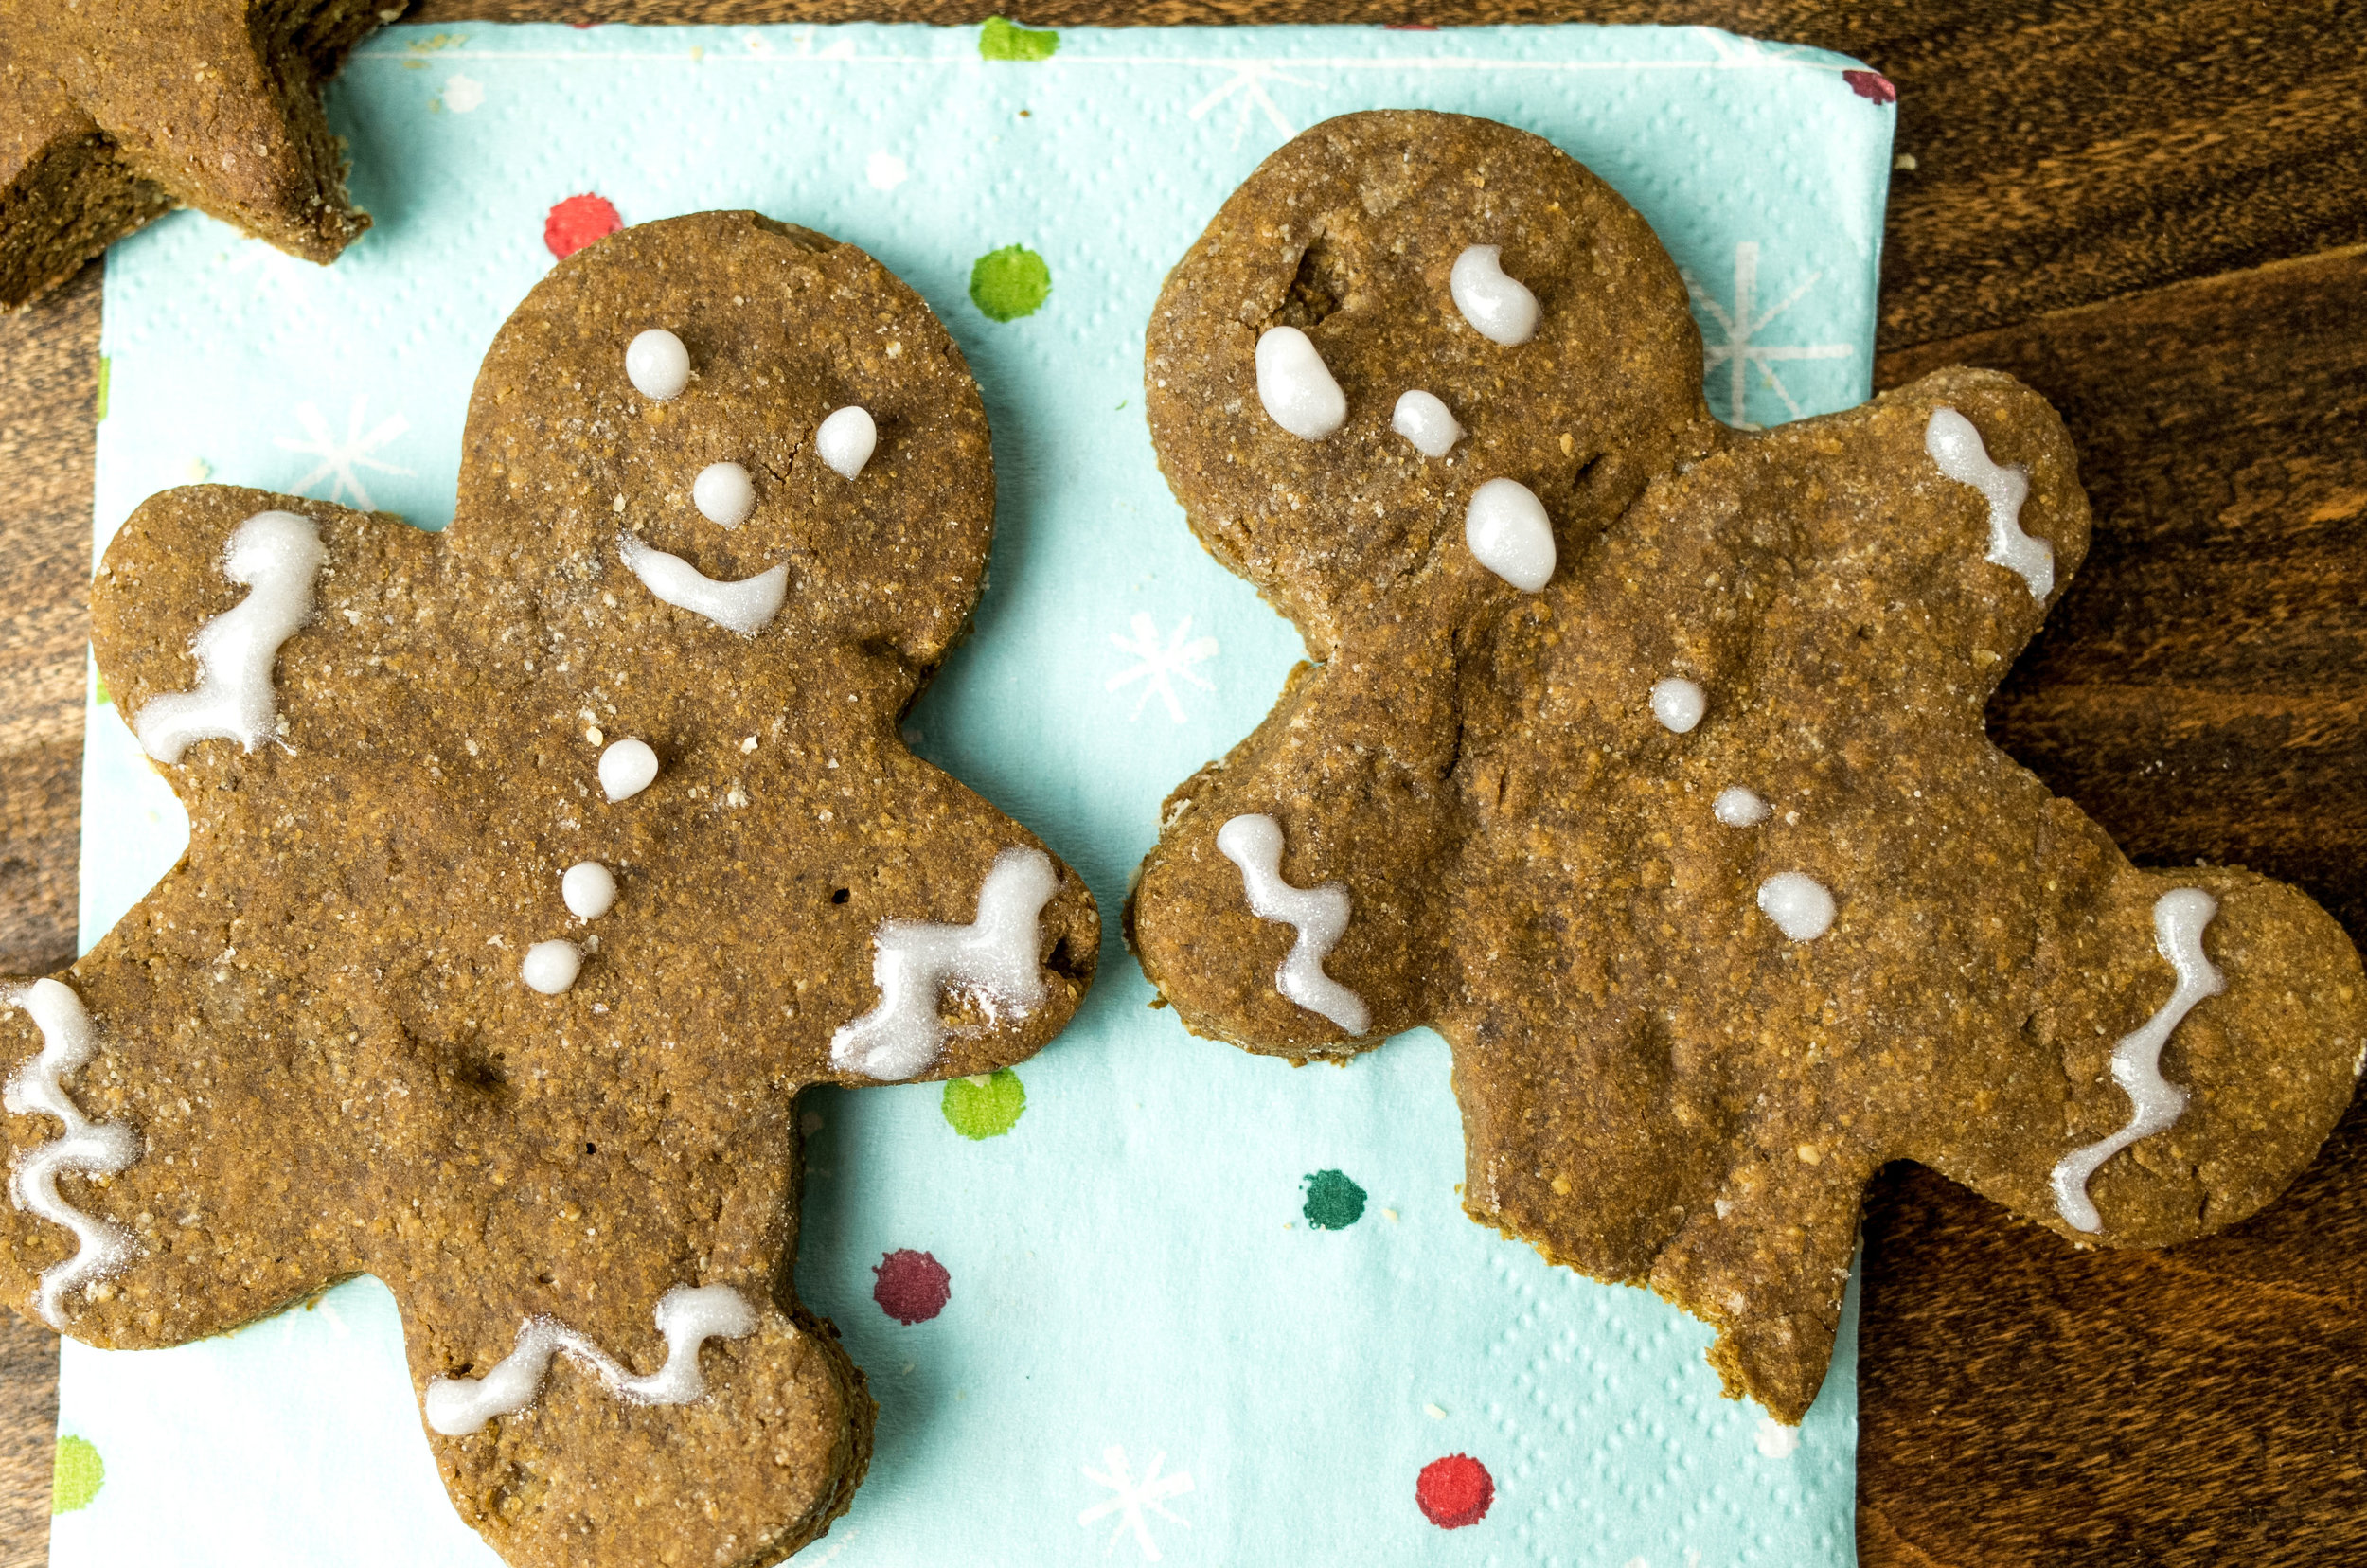 Gingerbread-Men-8.jpg